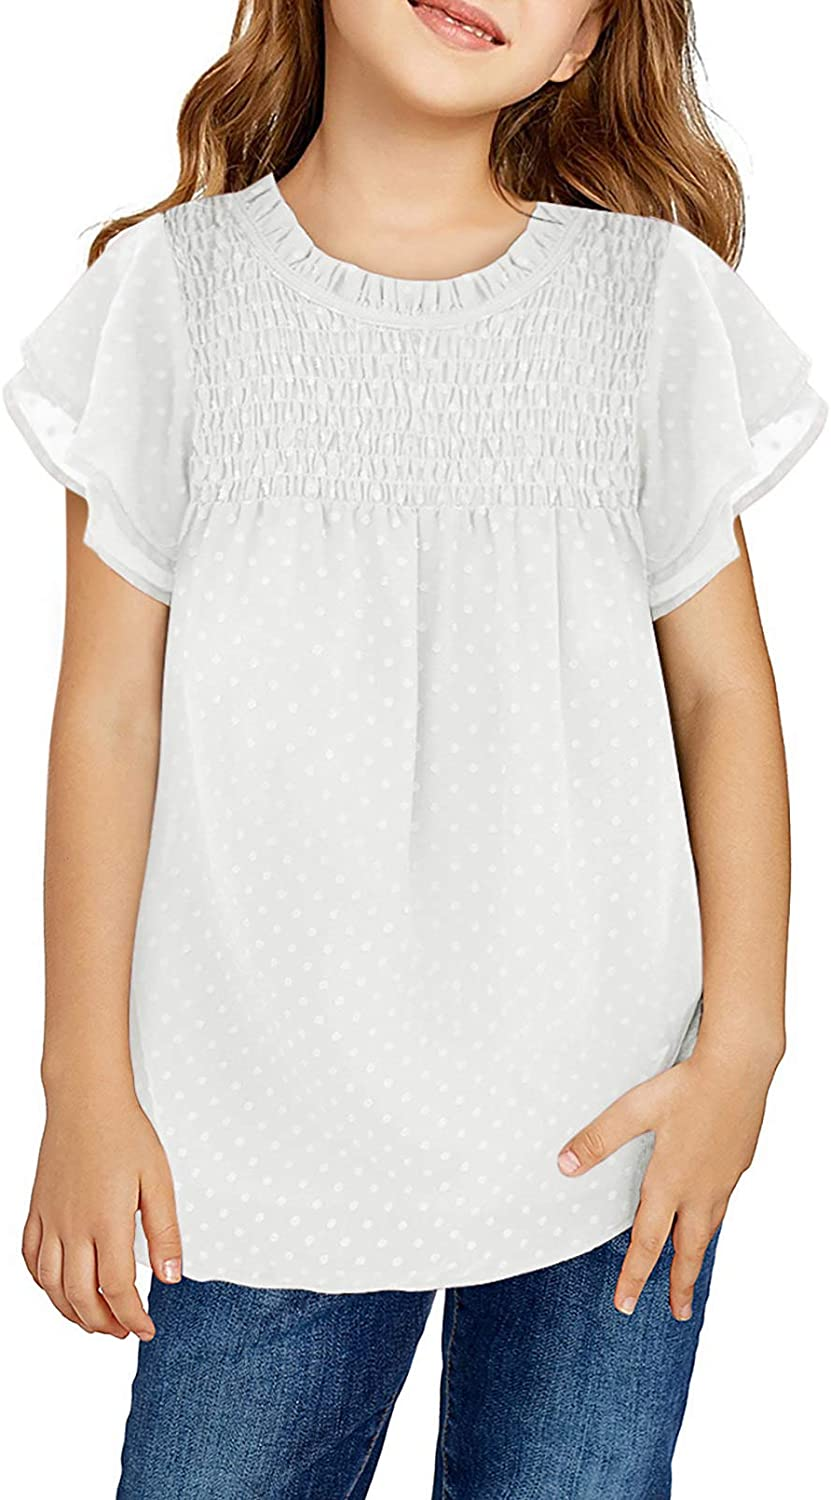 Dokotoo Girls Limited Online limited product time sale Crewneck Lace Crochet Flowy Short Sleeve C Pom